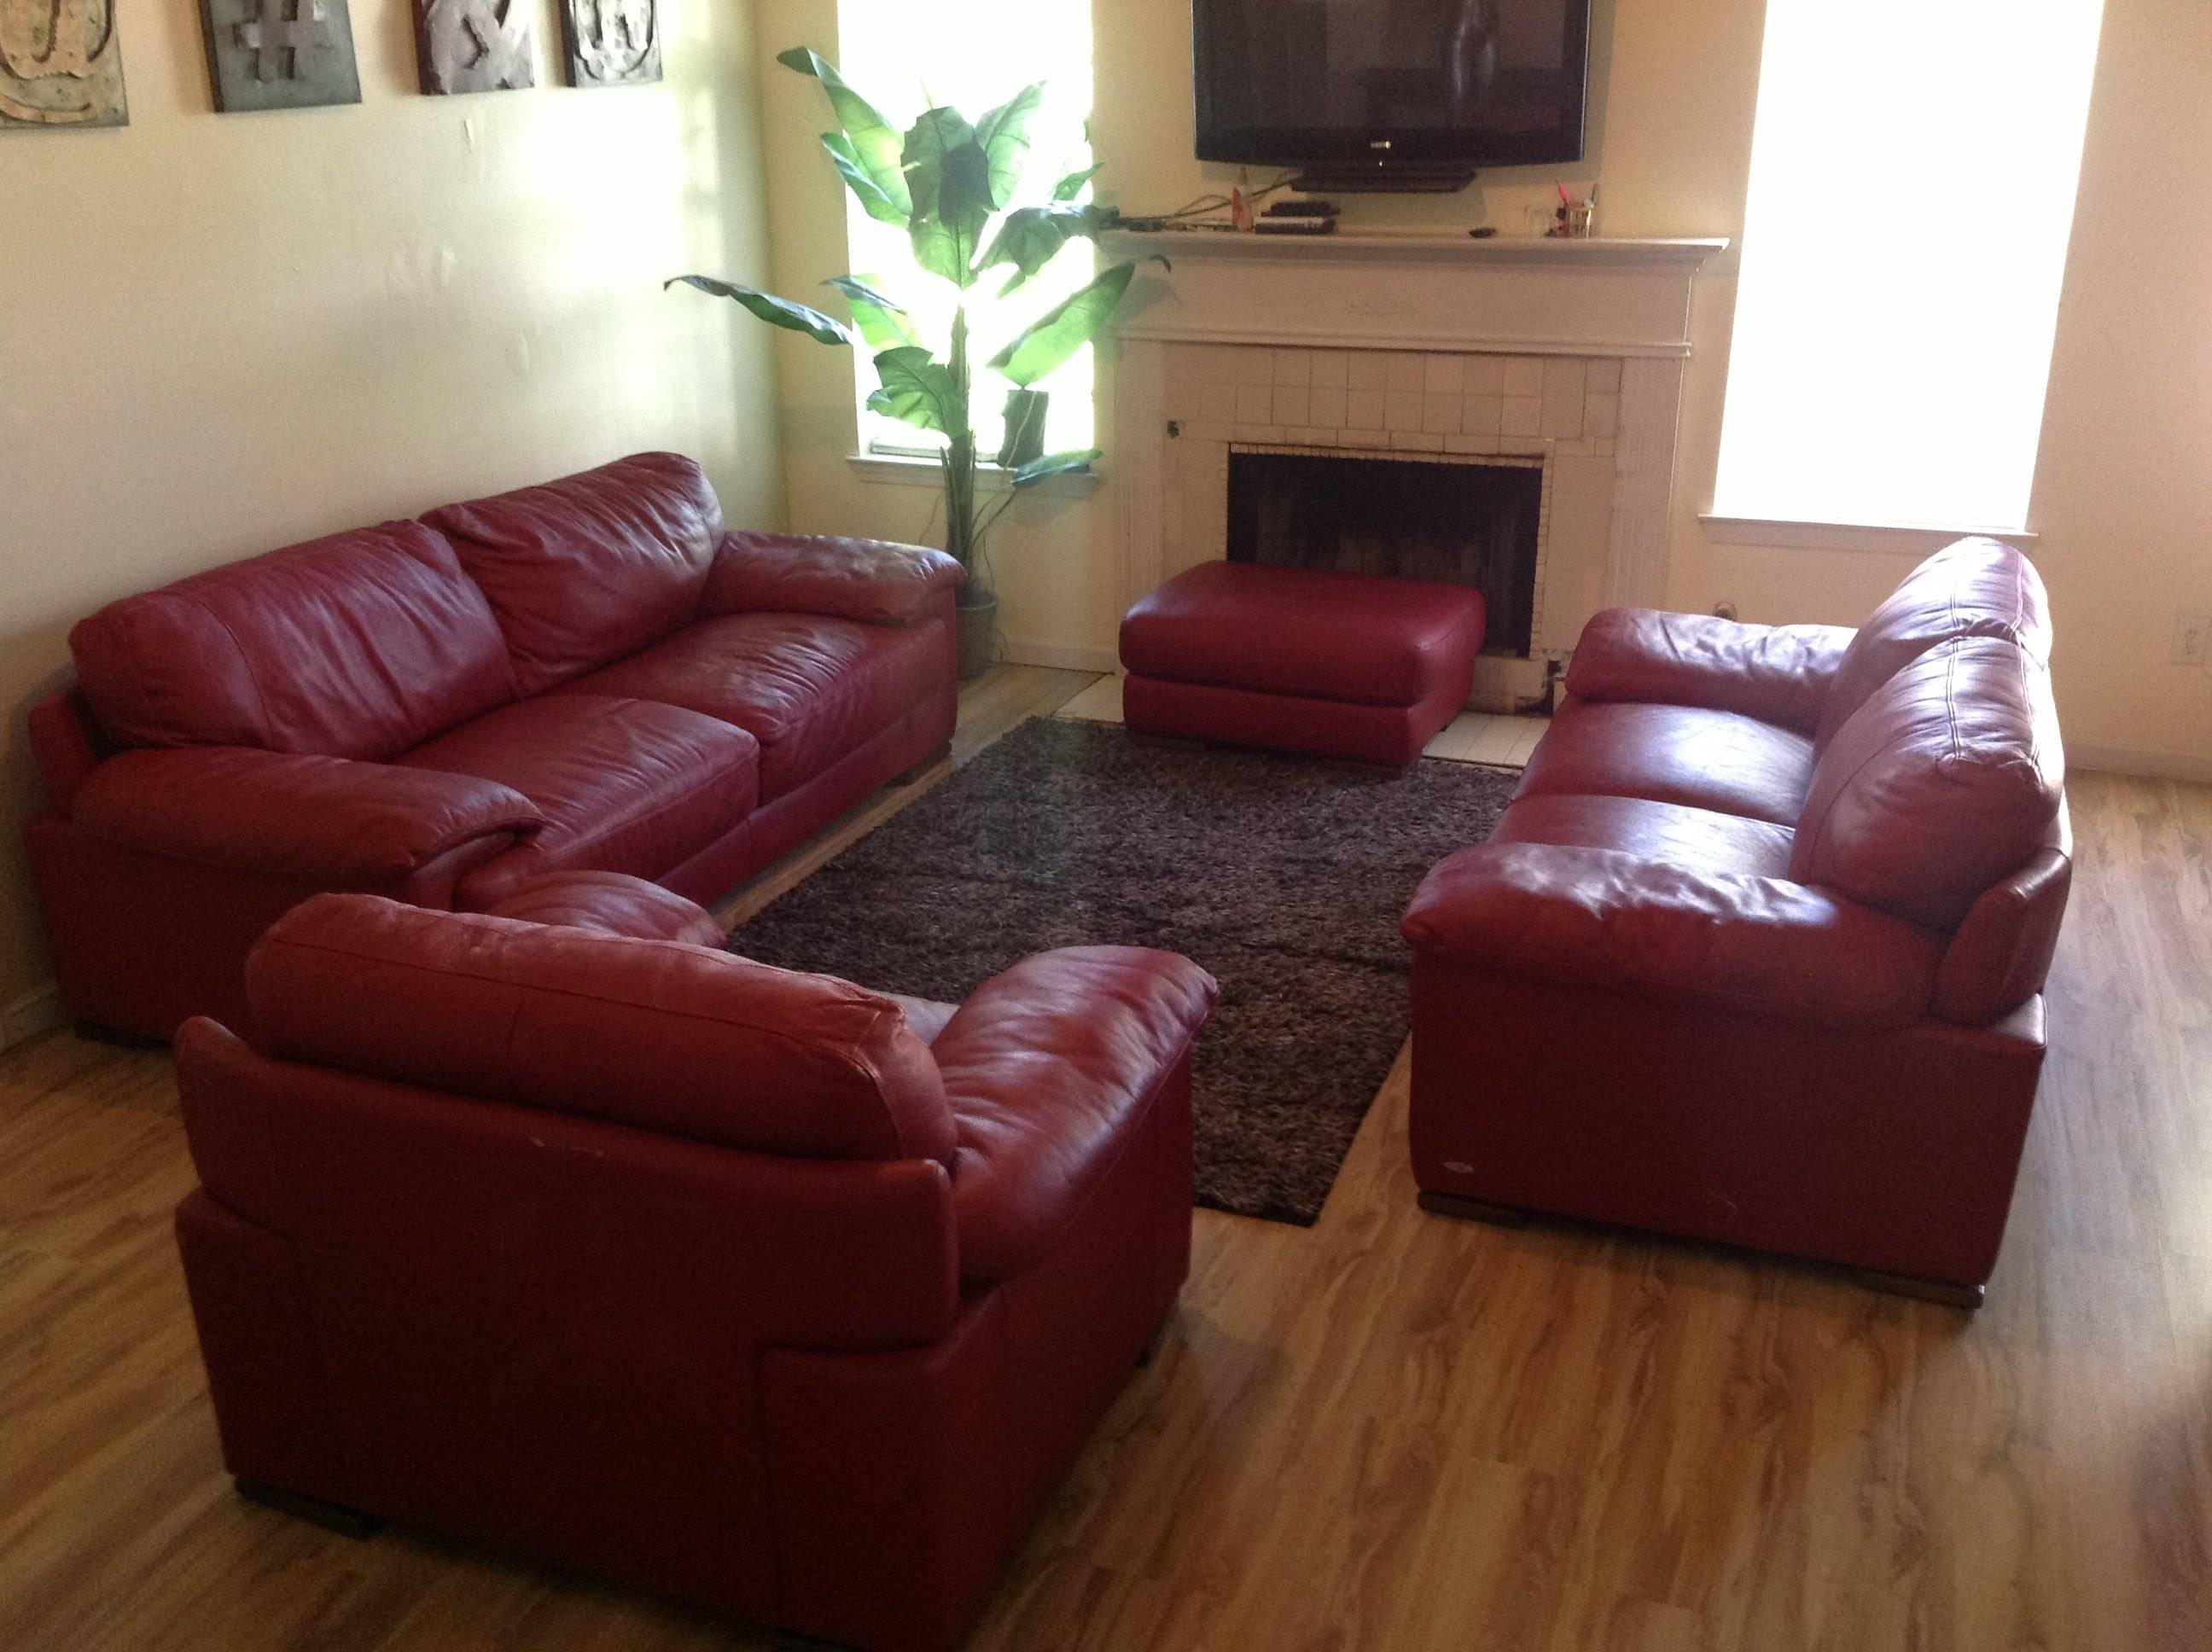 Red Cindycrawford Home Leather Couch Set - Youtube regarding Cindy Crawford Sectional Sofas (Image 14 of 15)